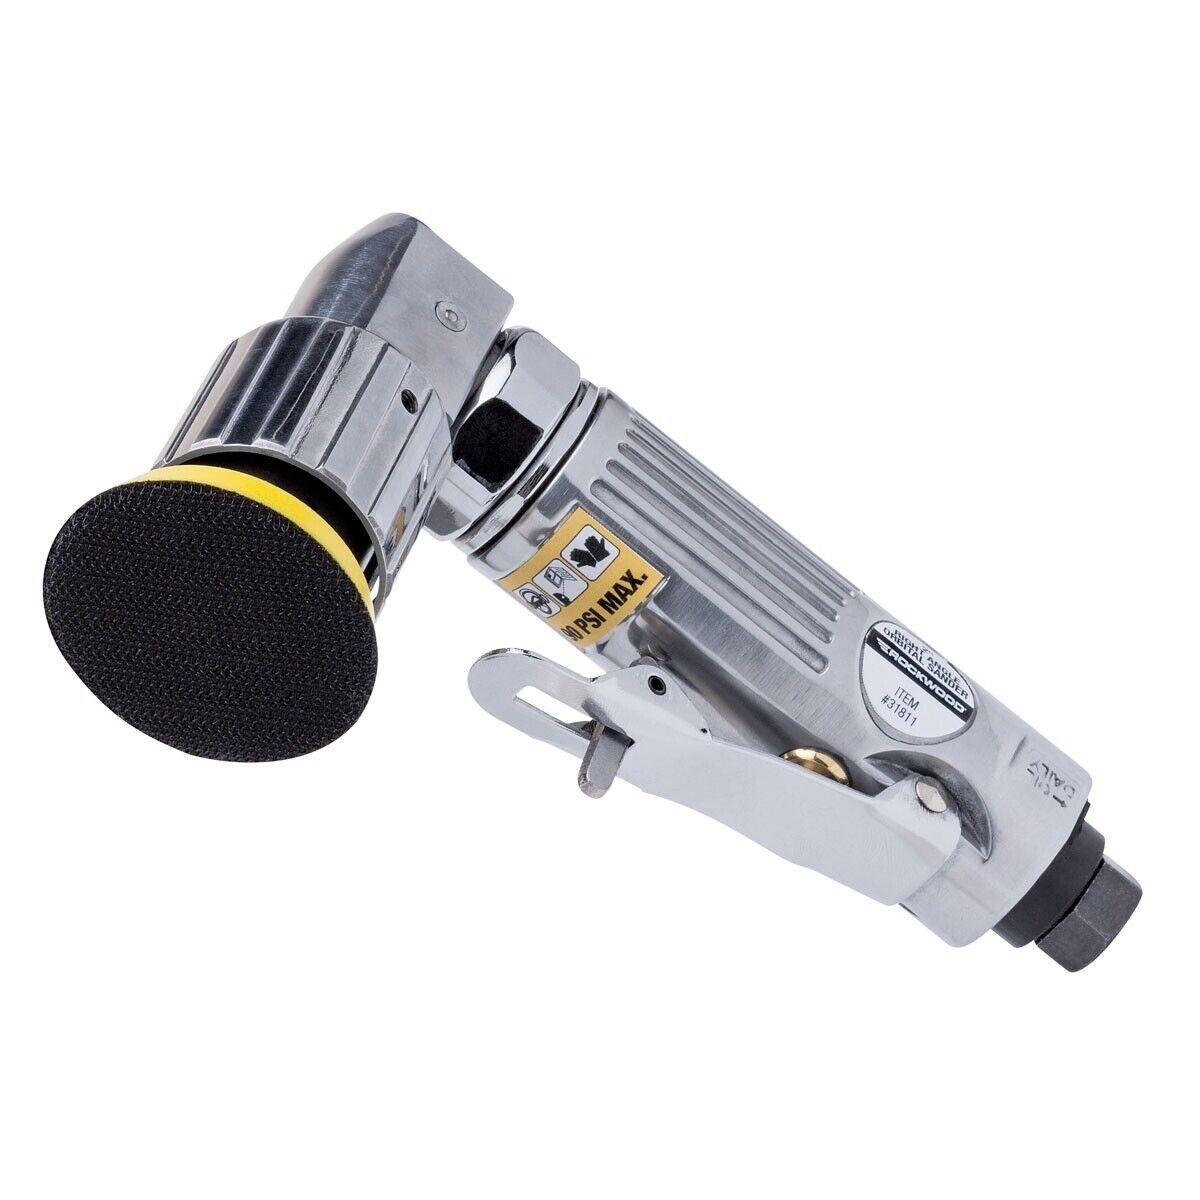 Rockwood 2 inch Air Elbow Right Angle Oribtal Sander Machine Tool Speed Control. Buy it now for 33.99